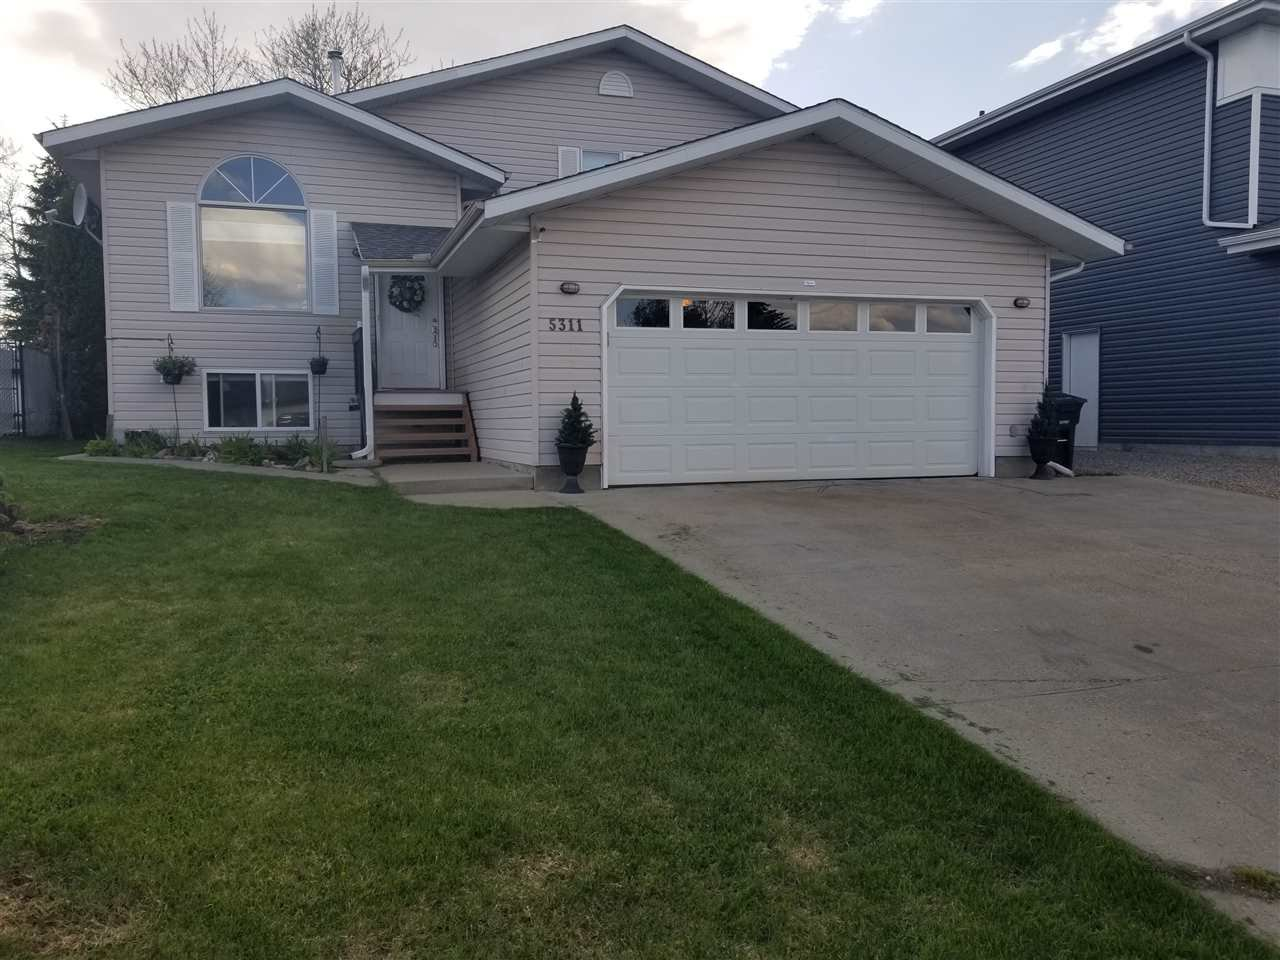 Main Photo: 5311 63 Street: Redwater House for sale : MLS®# E4197439